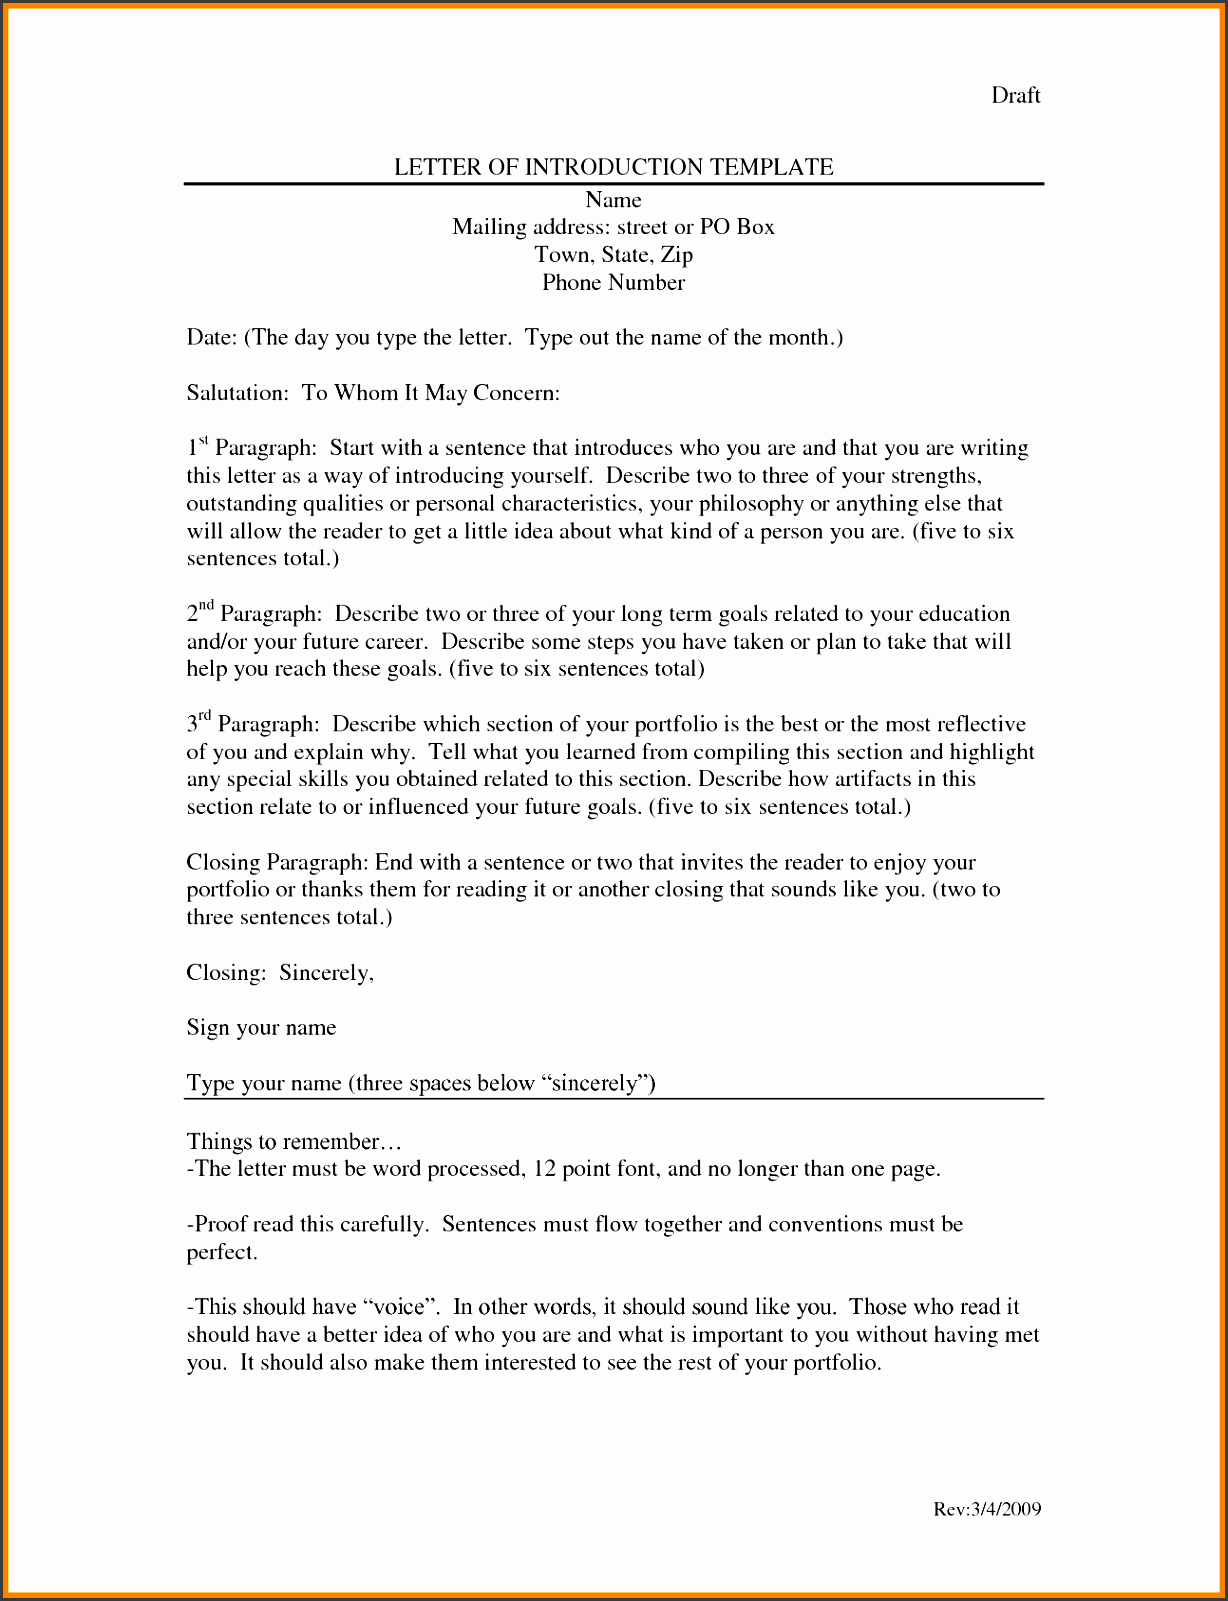 client introduction letter 7 4 self introduction email to client sample